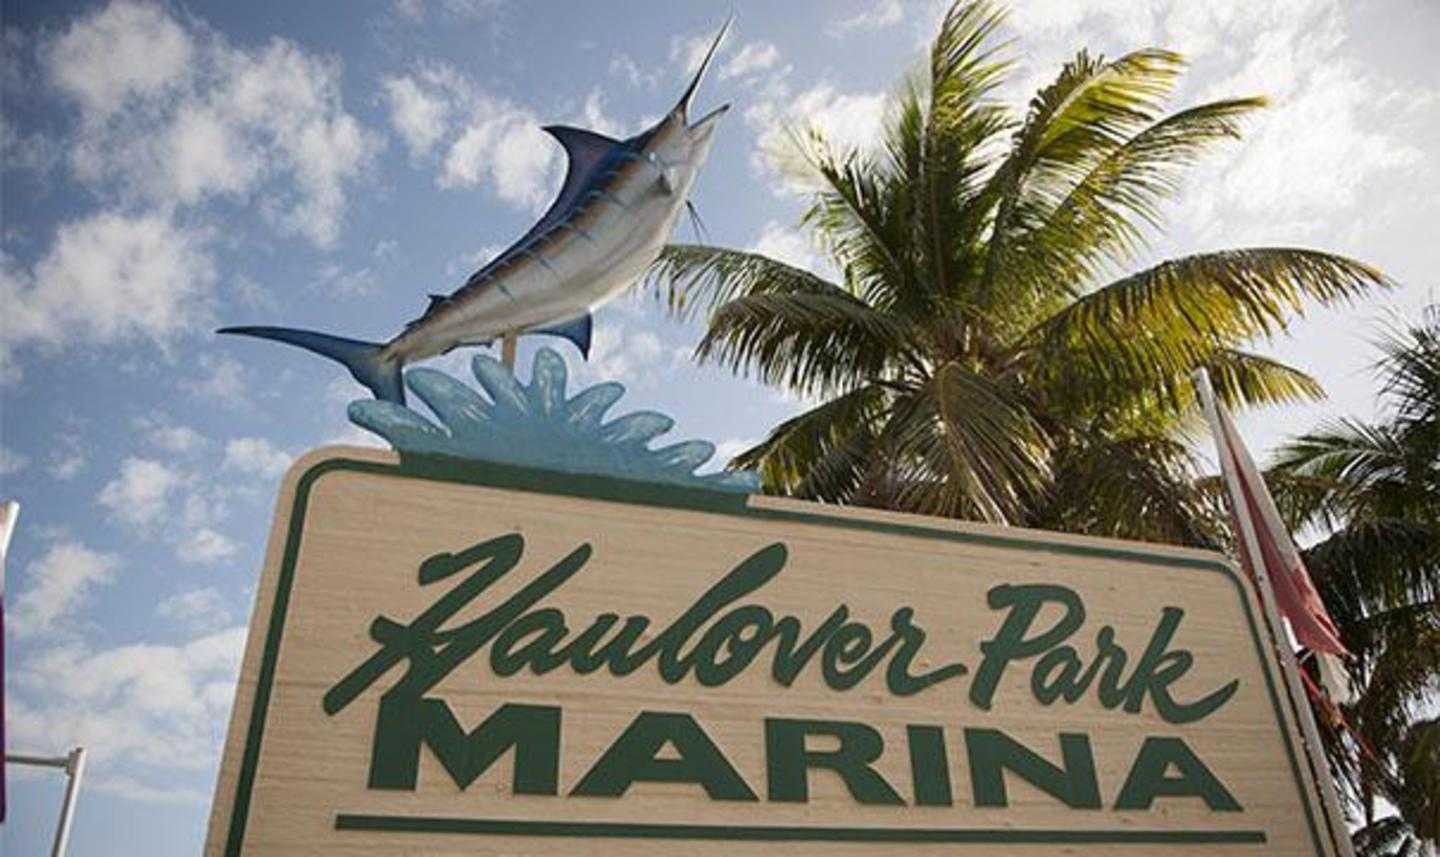 Bill Bird Marina at Haulover Park Entrance sign